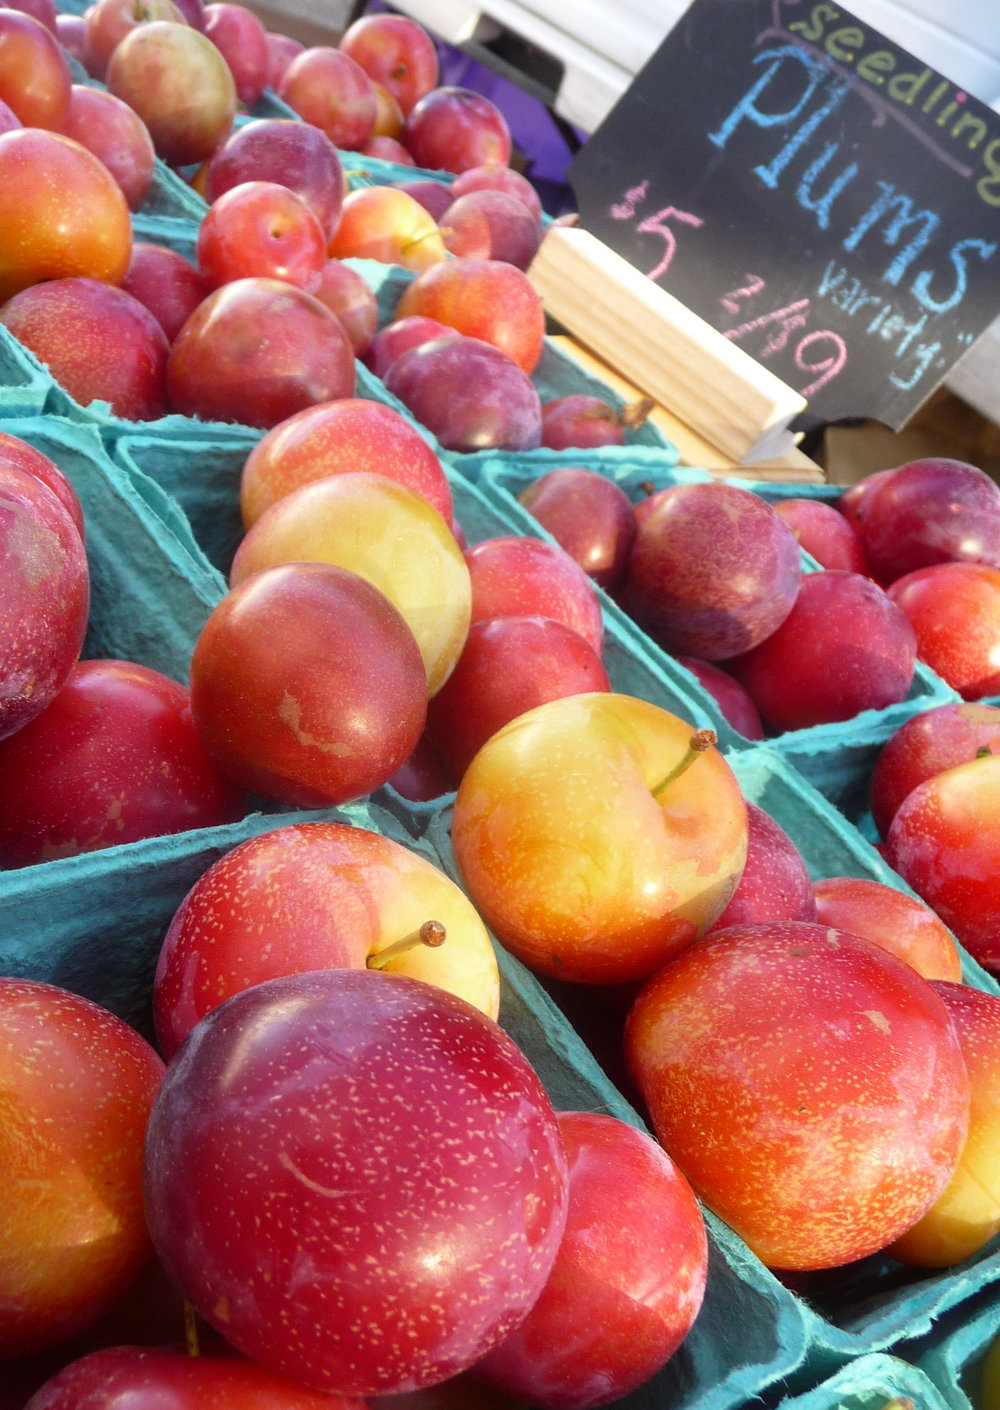 Chef's Tip - Beautiful Red Plums Bring Natural Sweetness and Flavor to this Healthy, Plant-Based Recipe